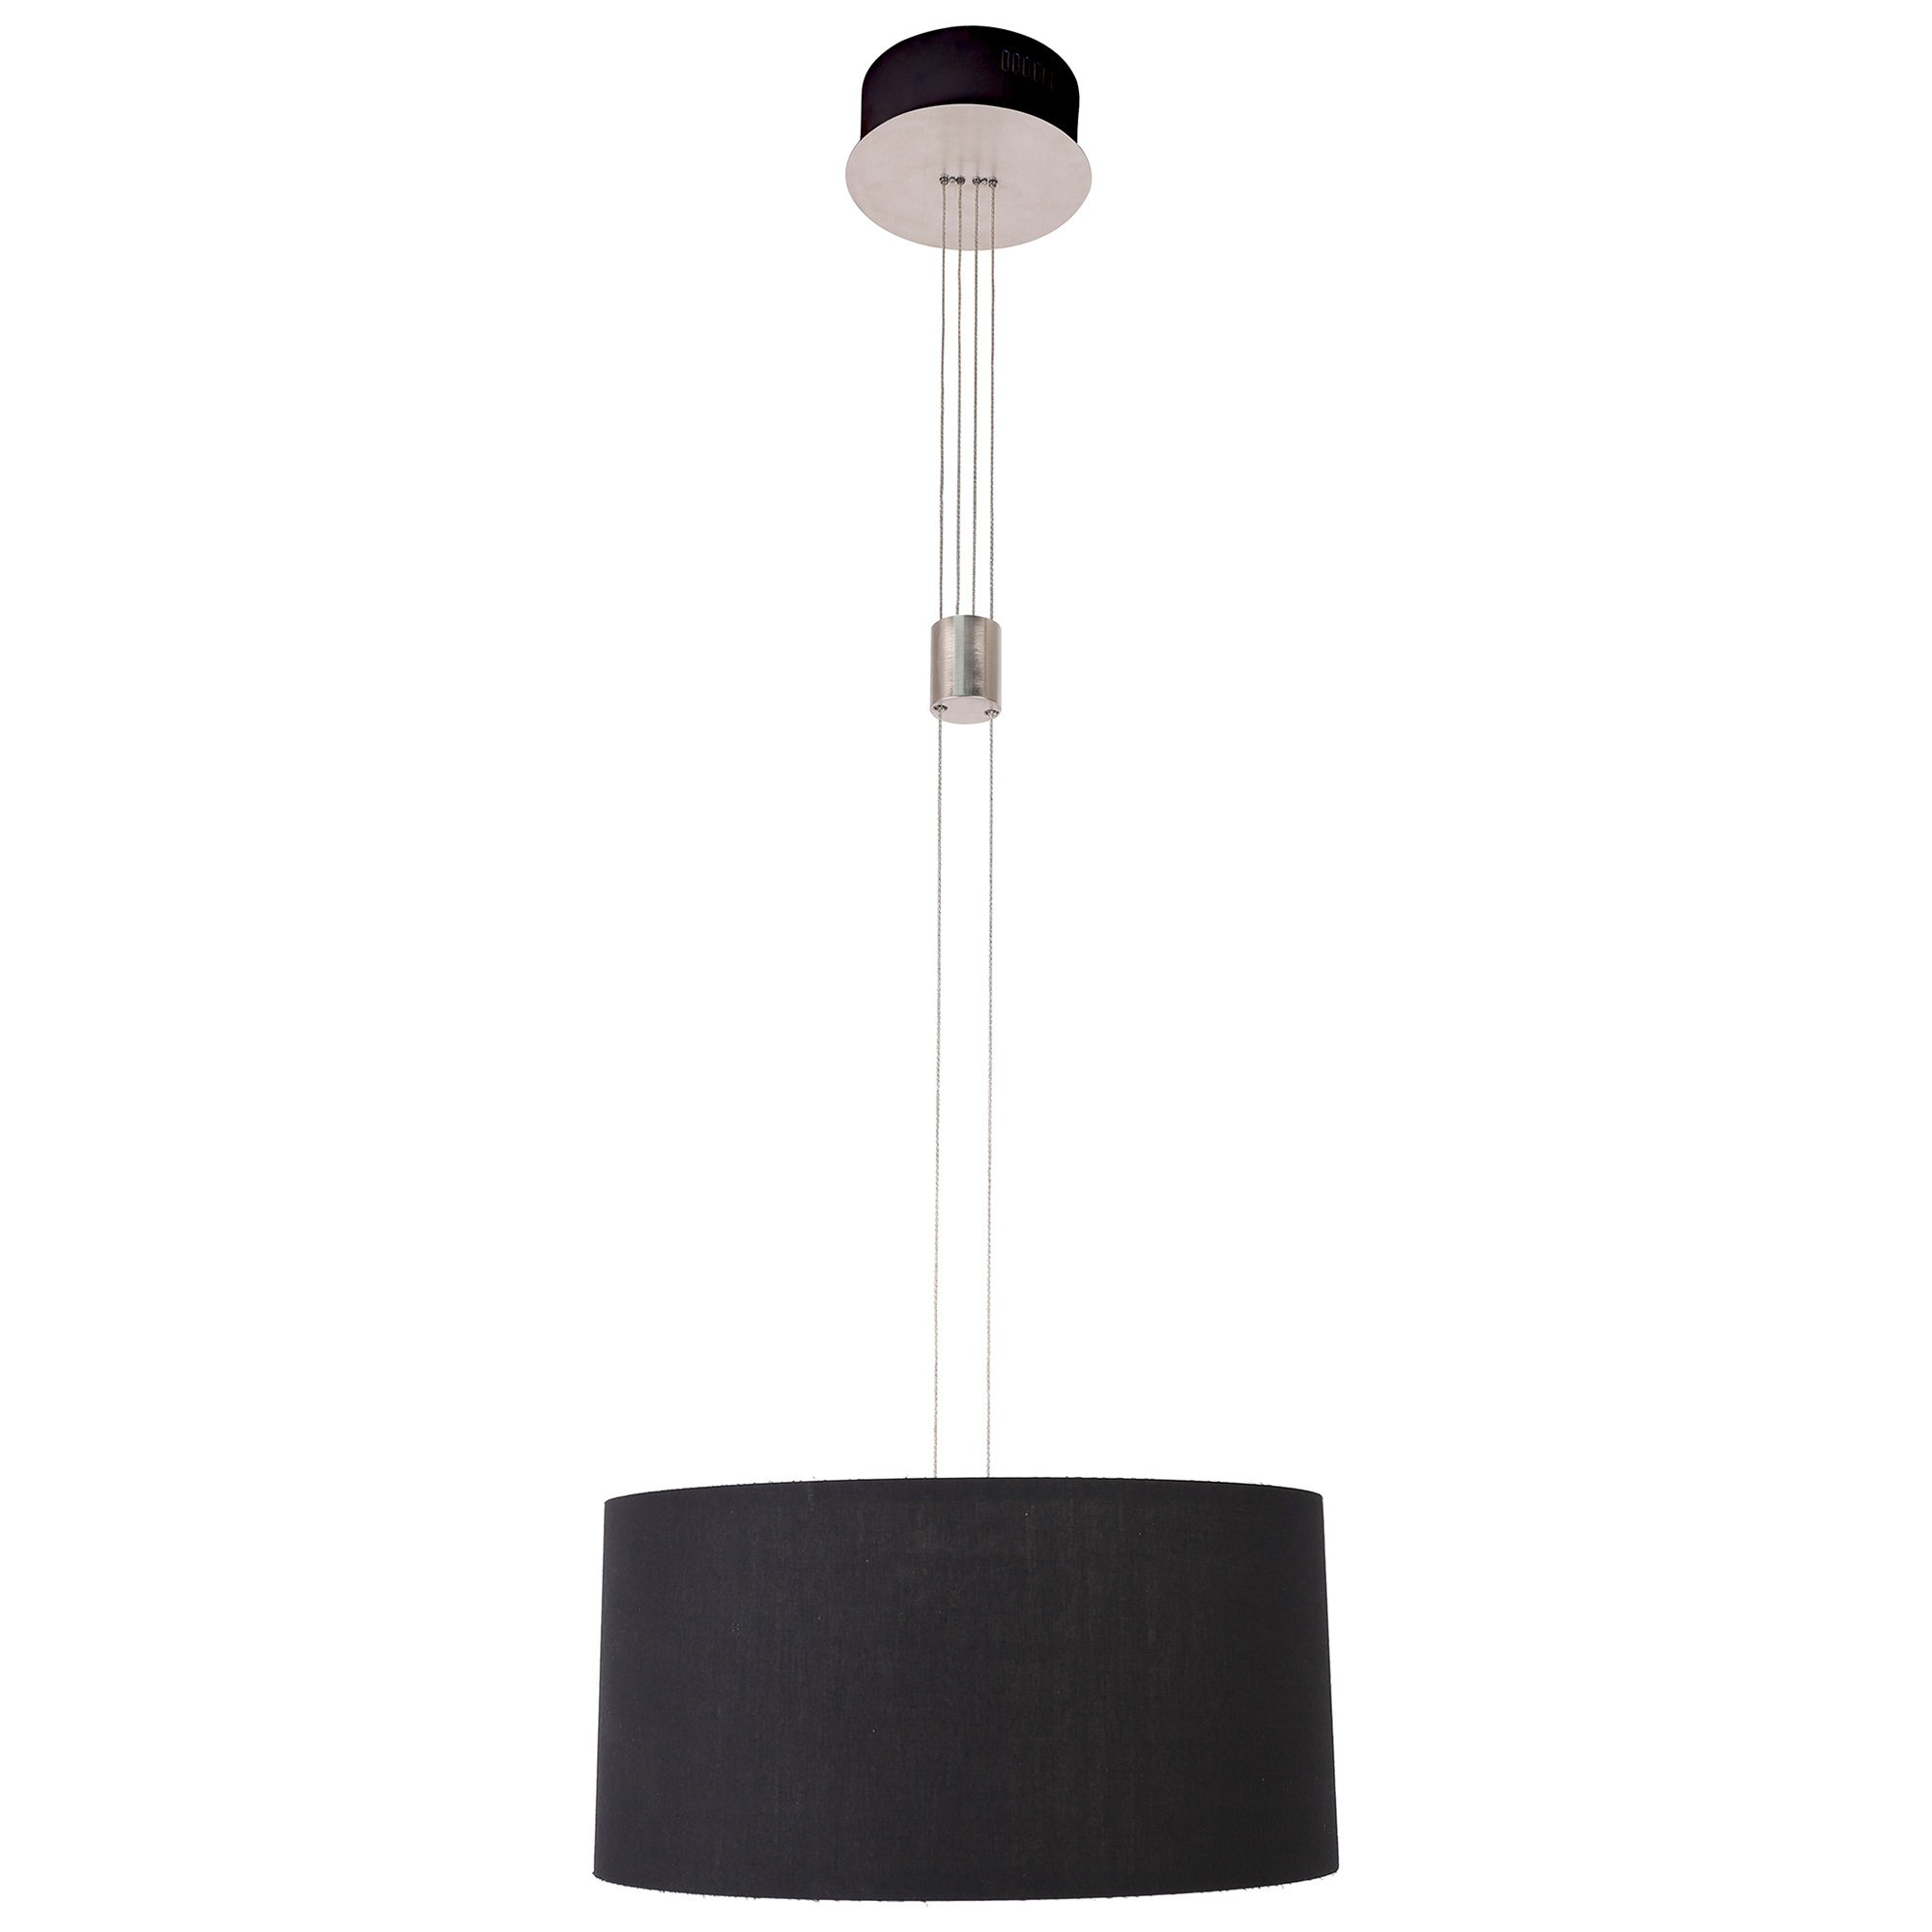 Mia Dimmable LED Rise & Fall Fabric Pendant Light, Black